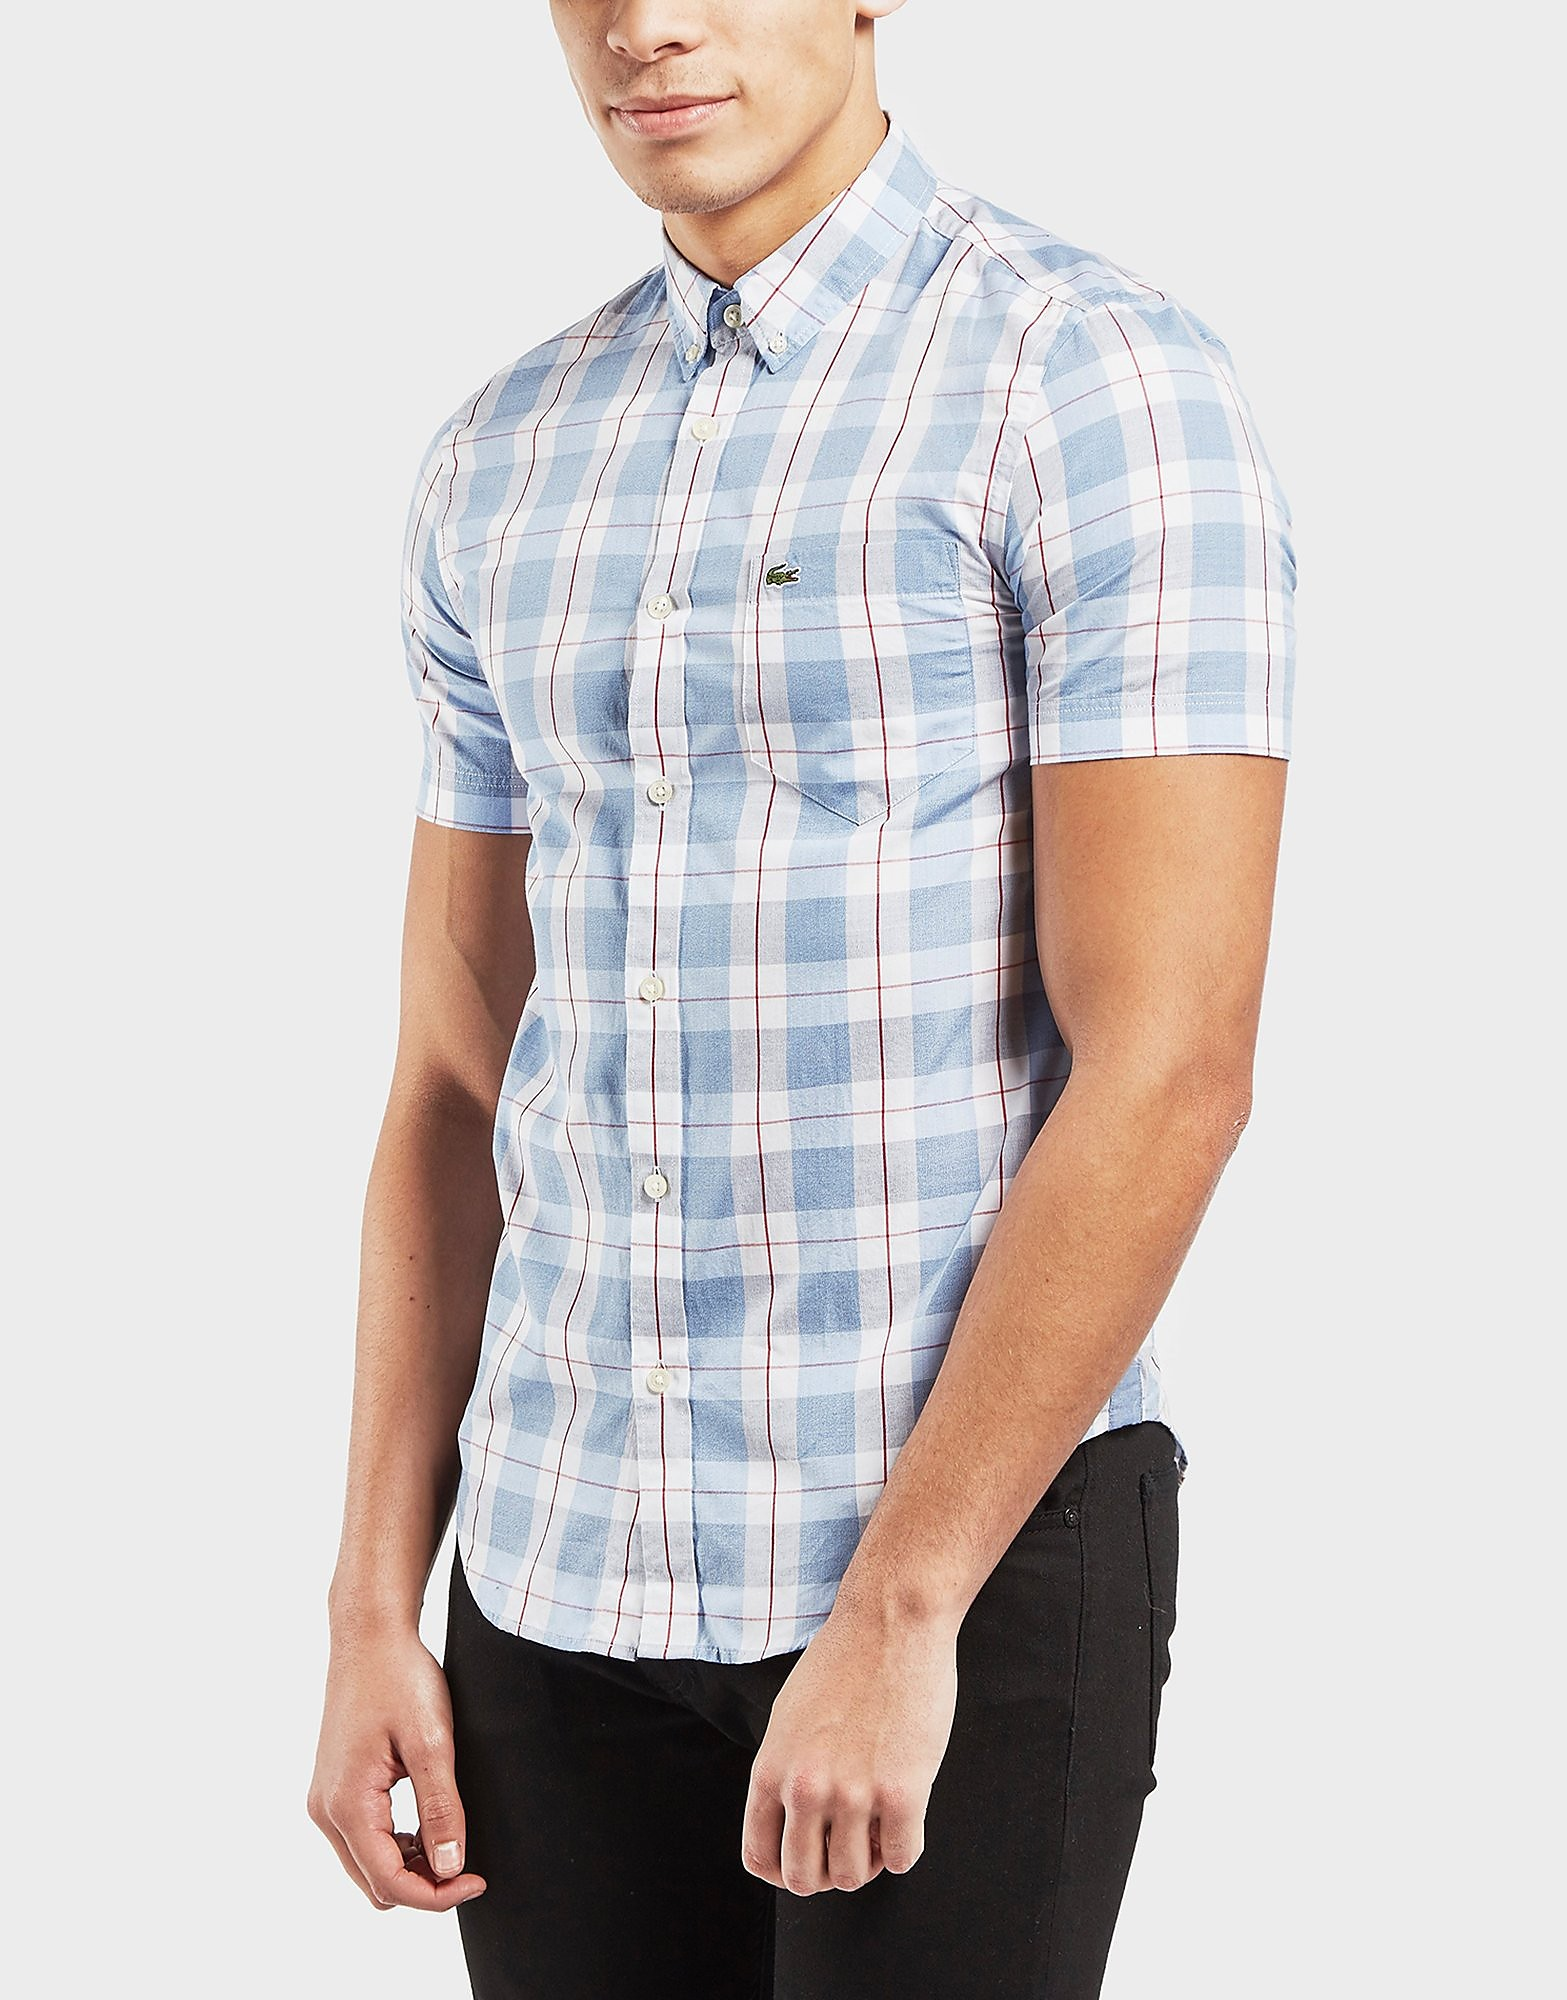 Lacoste Block Check Shirt